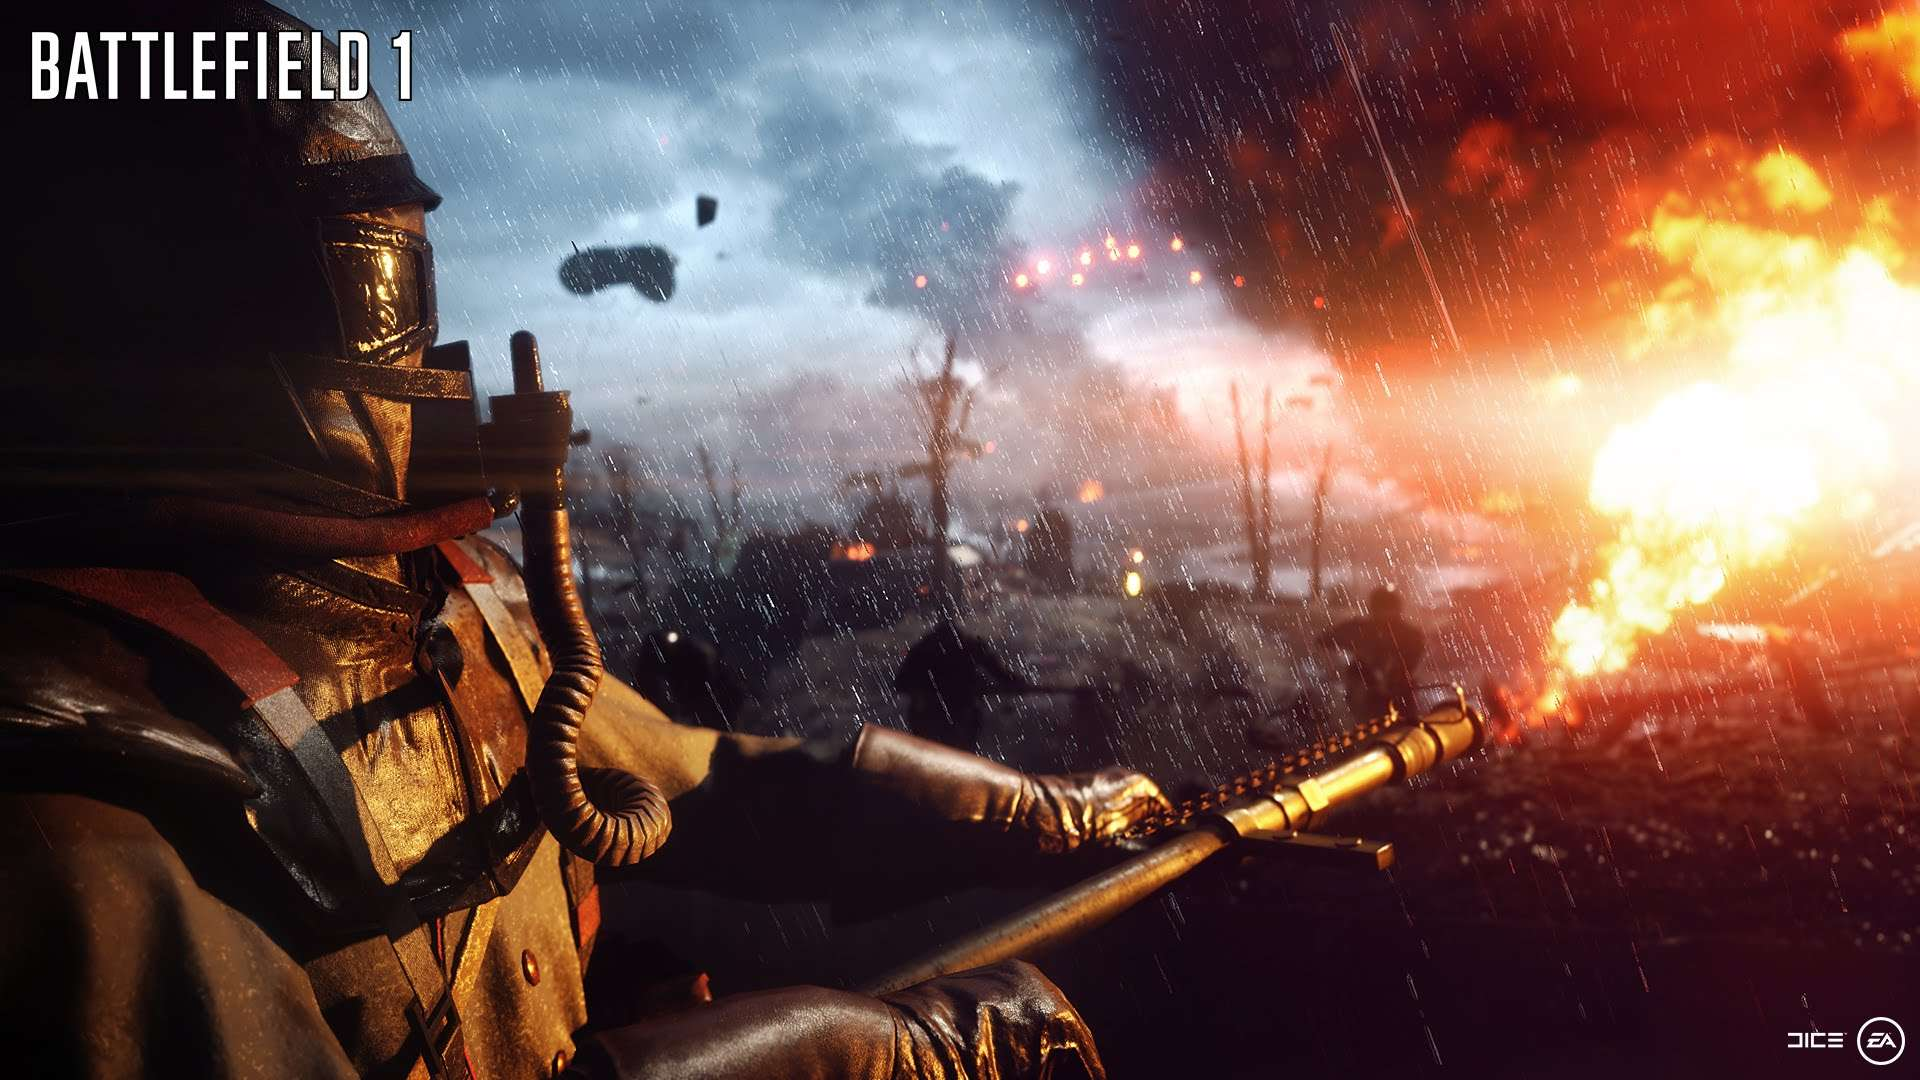 E3 2016: Battlefield 1 Going To Feature Dynamic Weather, Airships, Armored Train and More 5